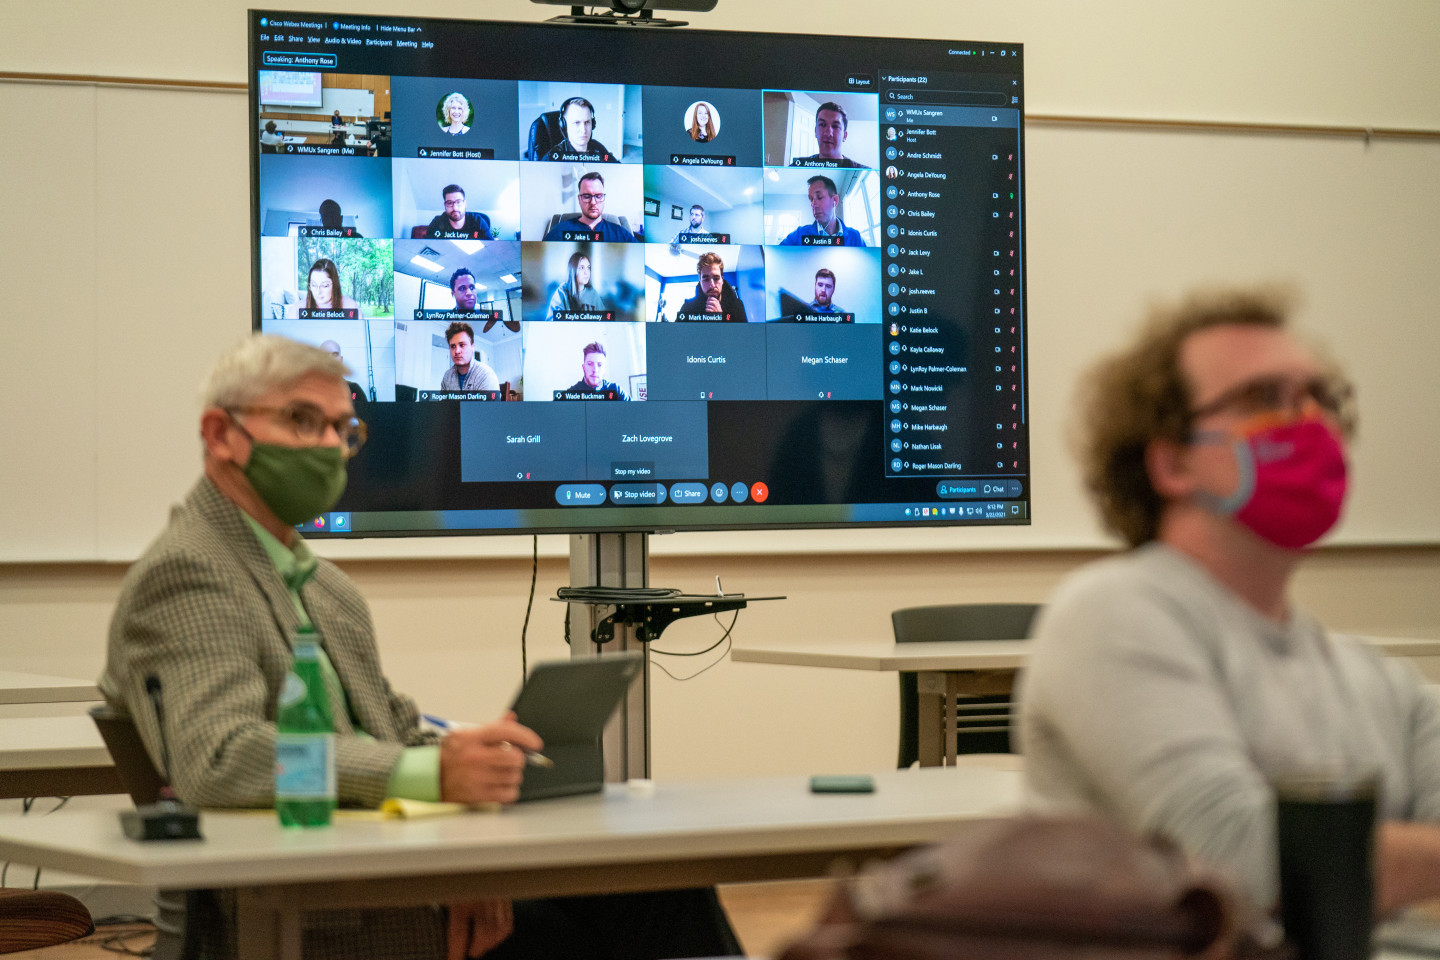 A large monitor with students in a video conference stands behind a class of students in desks.